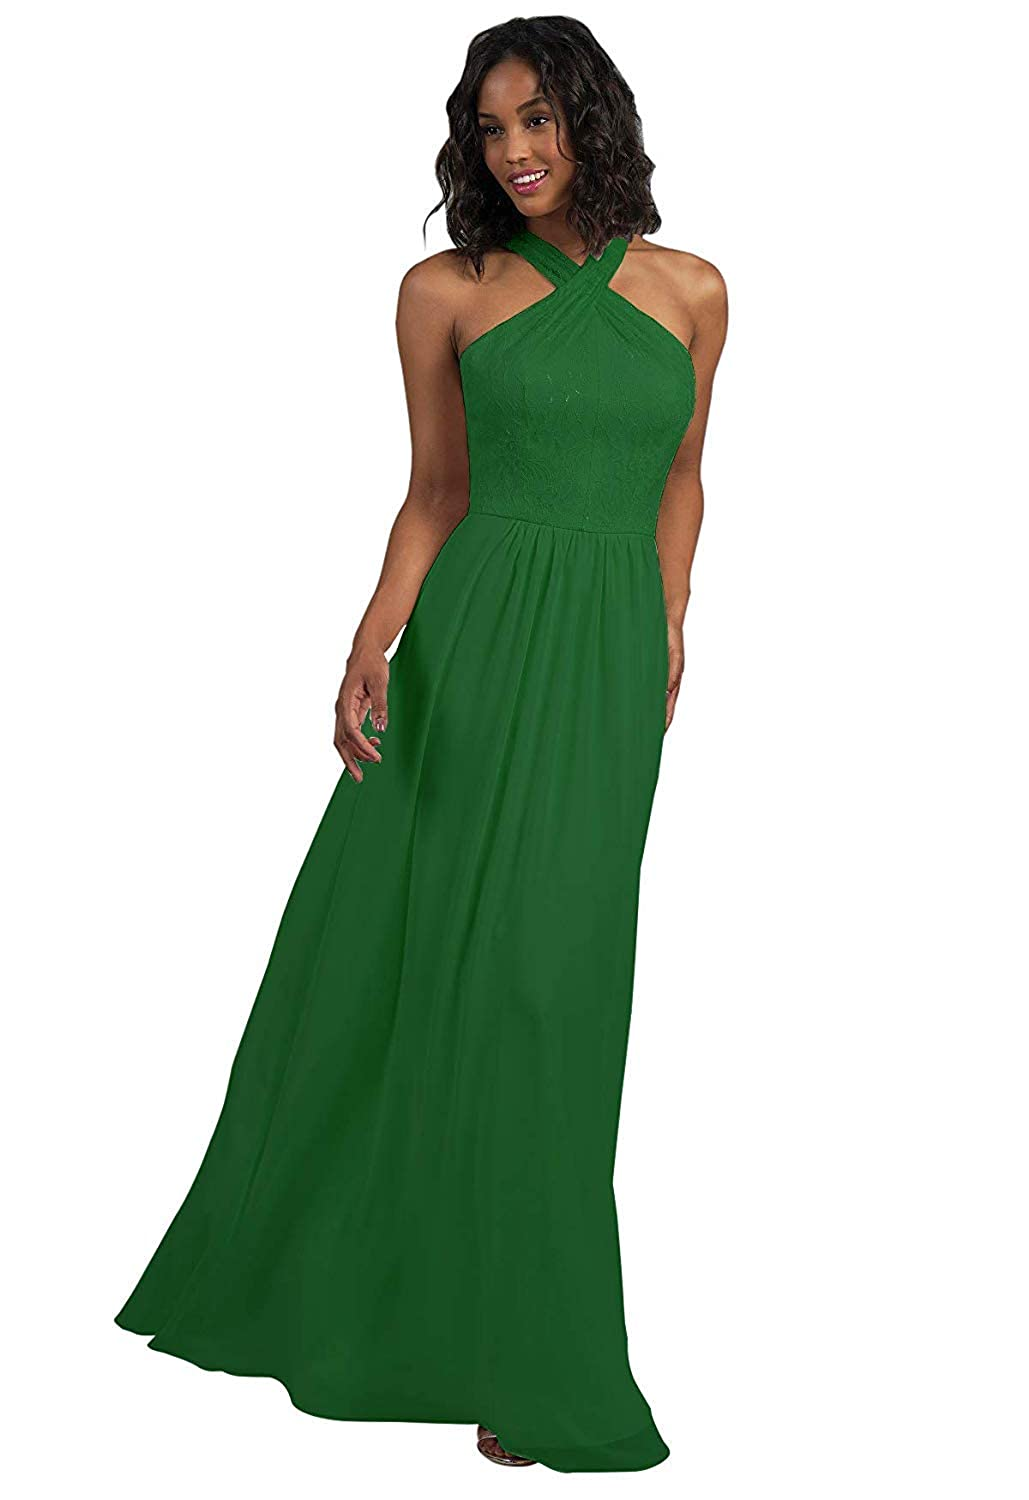 Emerald Green RTTUTED Lace Long Bridesmaid Dresses with CrissCross Neckline Prom Evening Gown